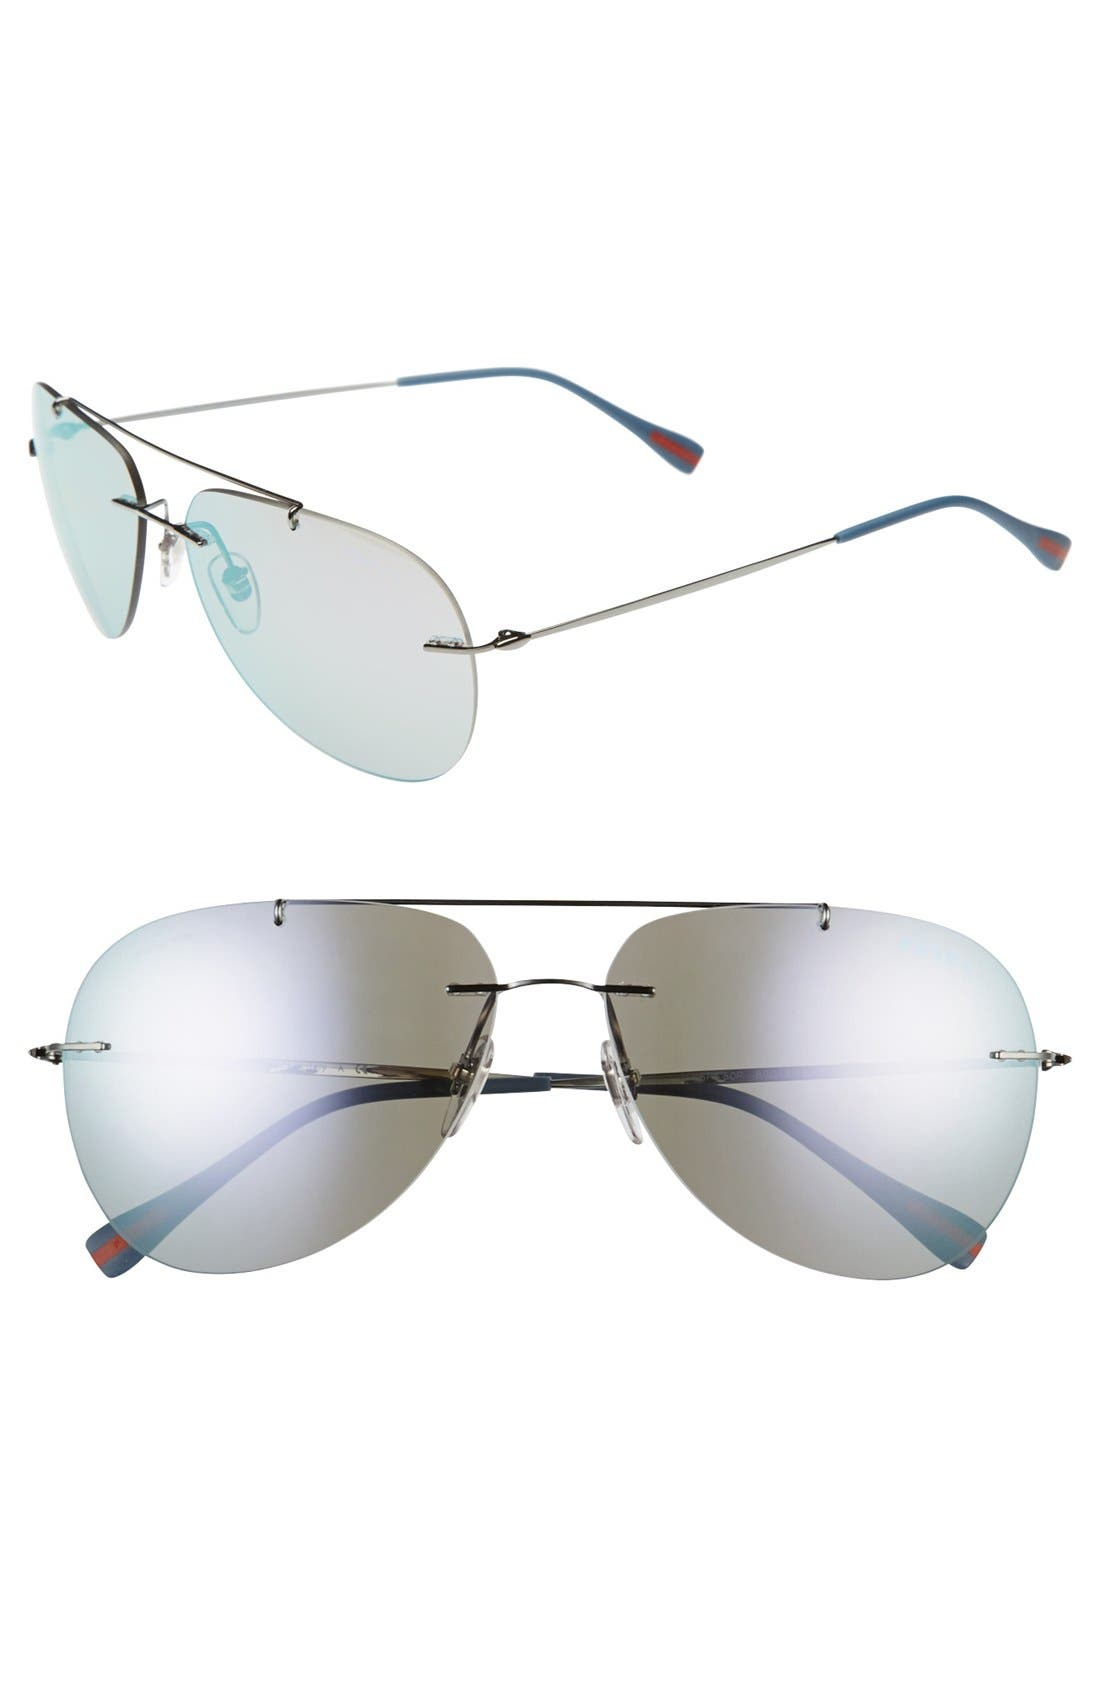 Main Image - Prada 'Pilot' 60mm Rimless Sunglasses